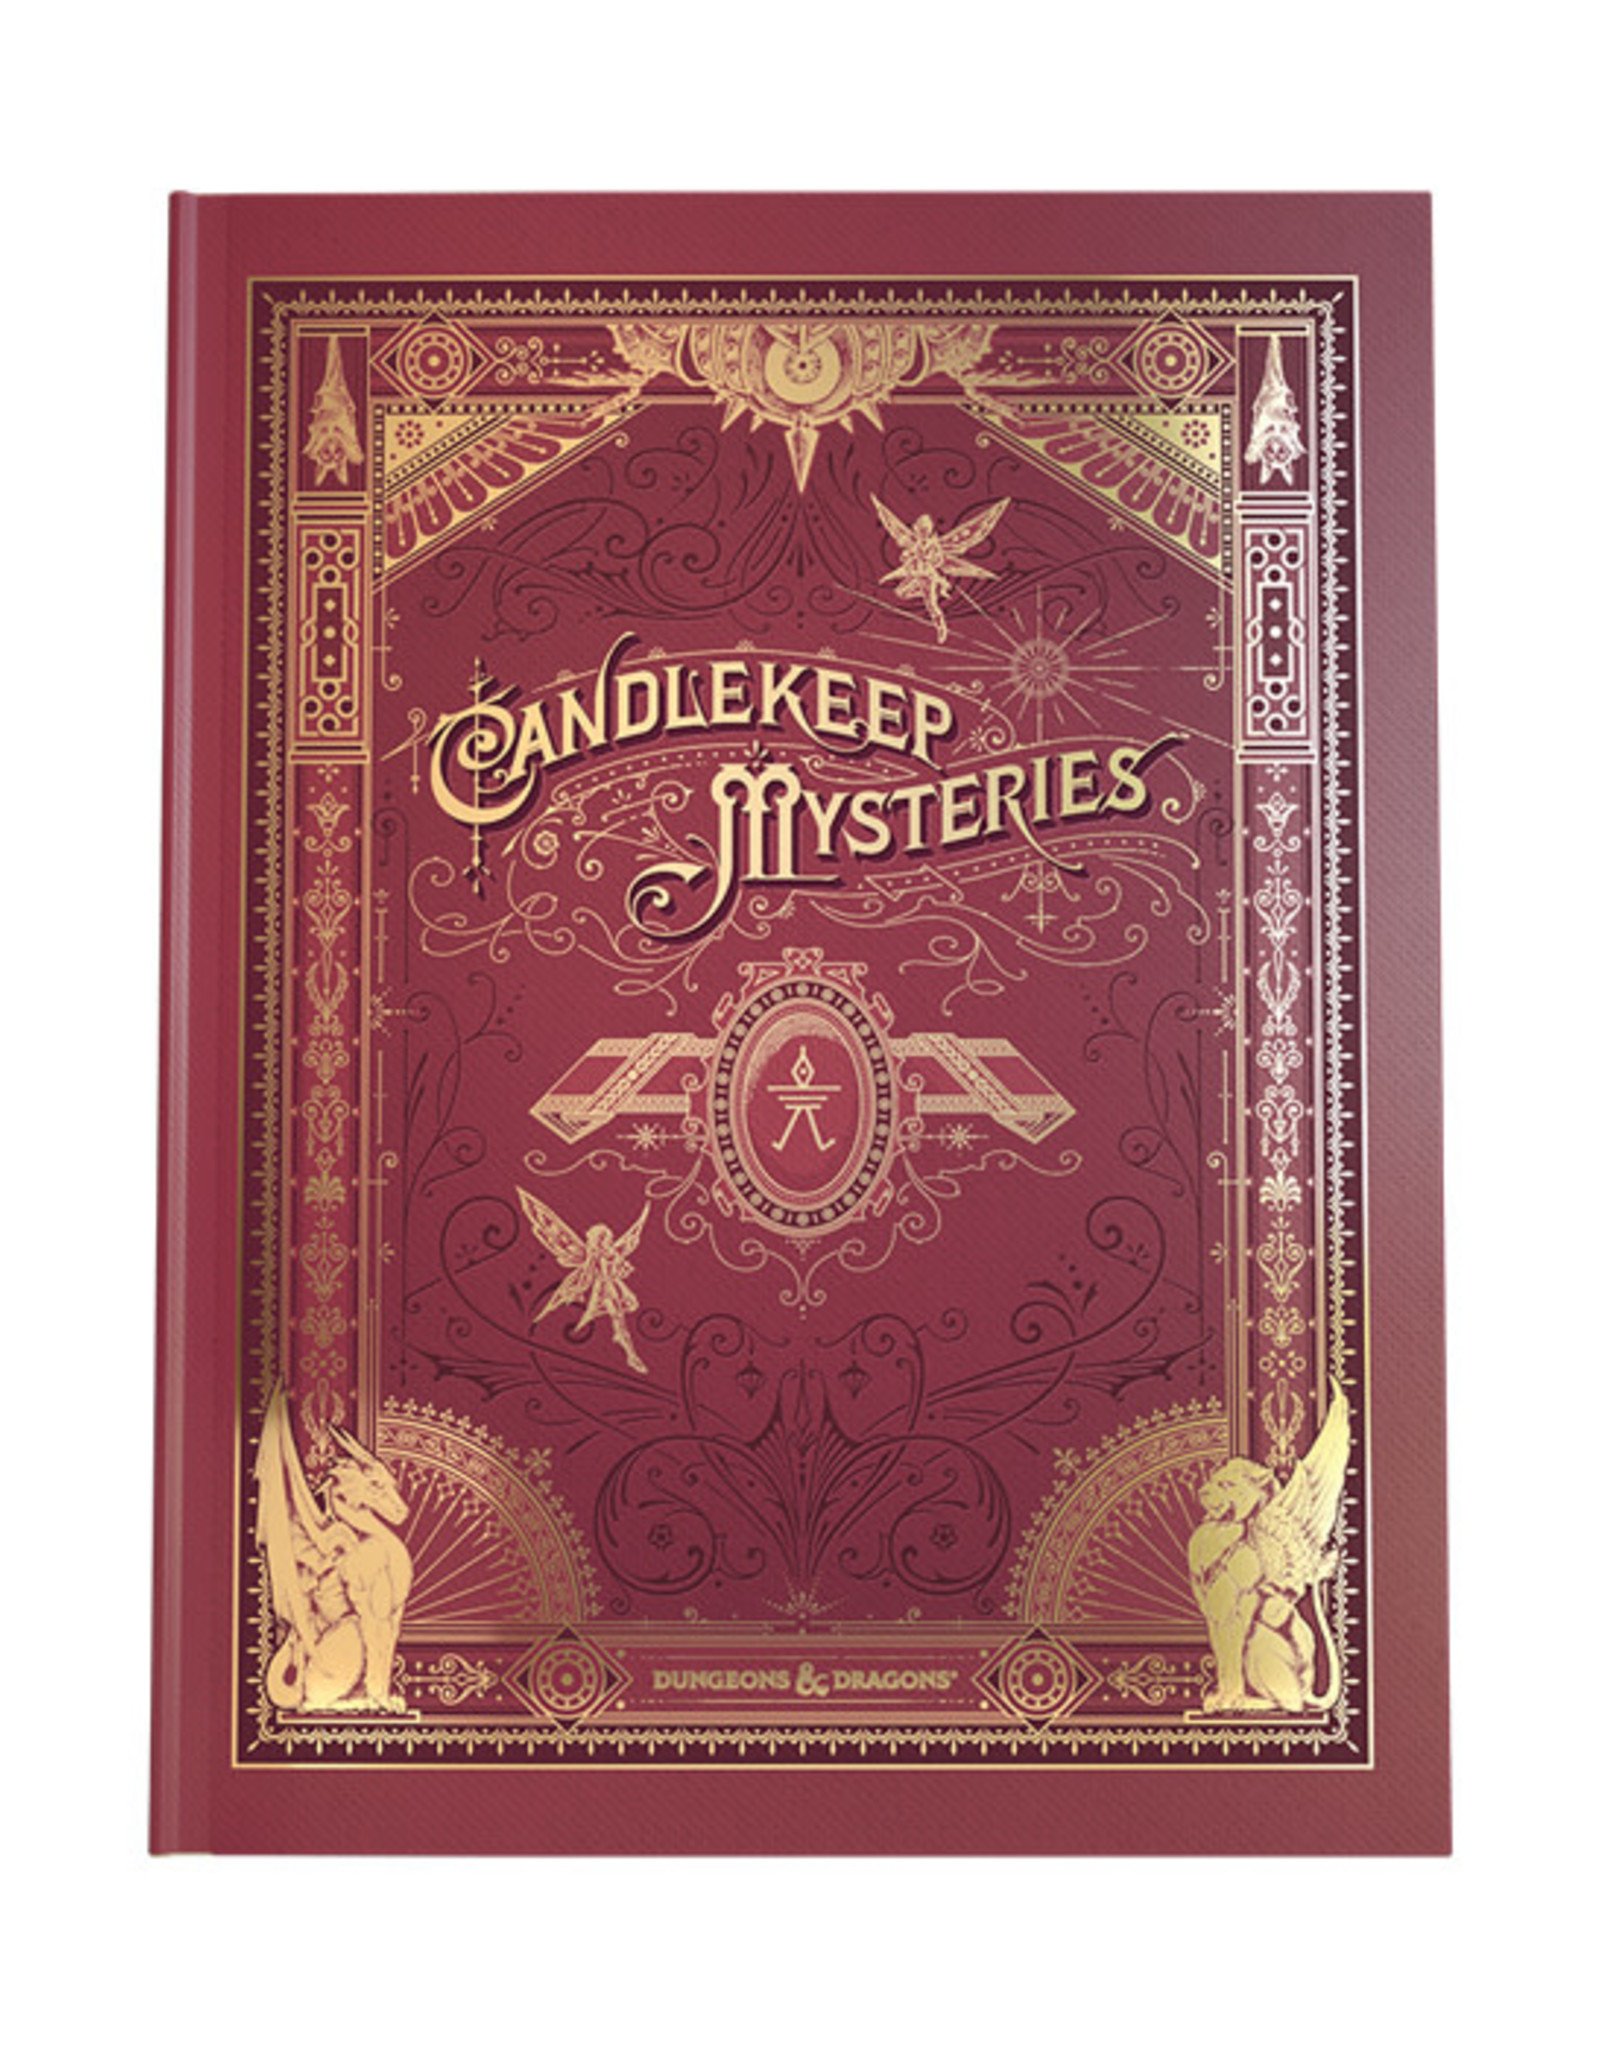 Dungeons & Dragons Dungeons & Dragons: 5th Edition - Candlekeep Mysteries - Alternate Art Cover